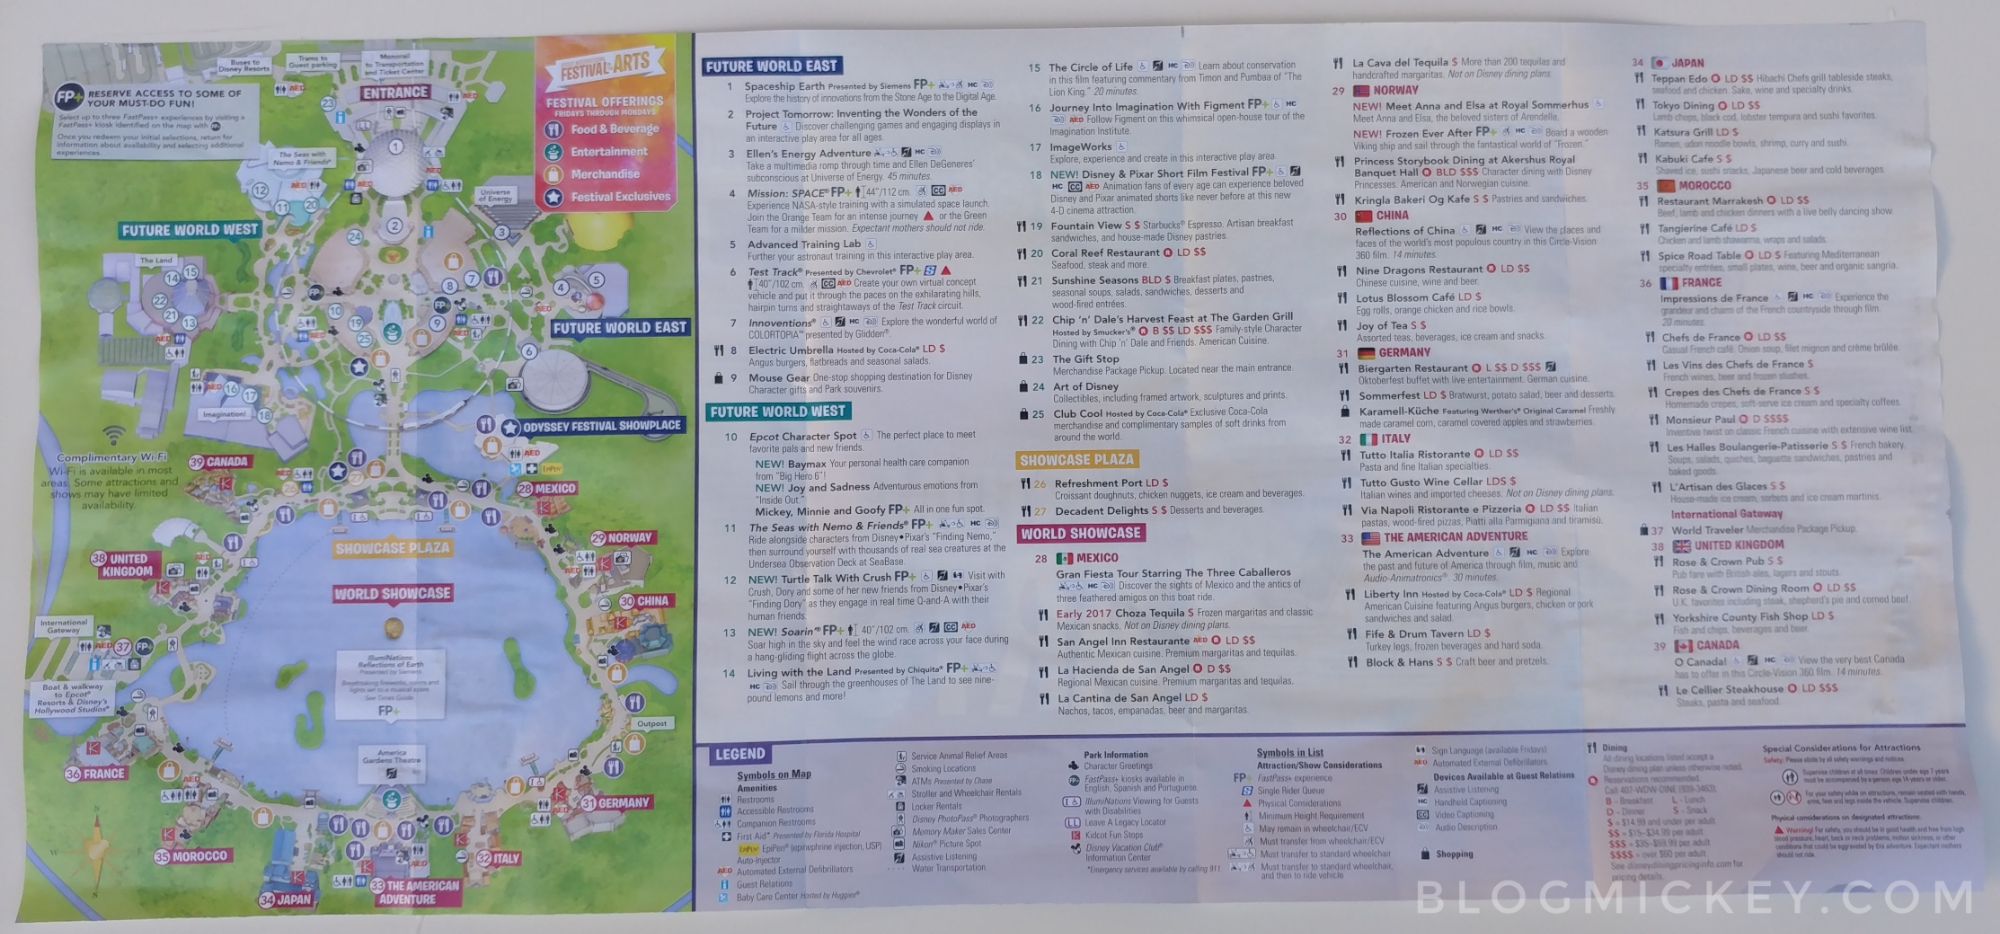 PHOTOS - Epcot Festival of the Arts guide map - Blog Mickey